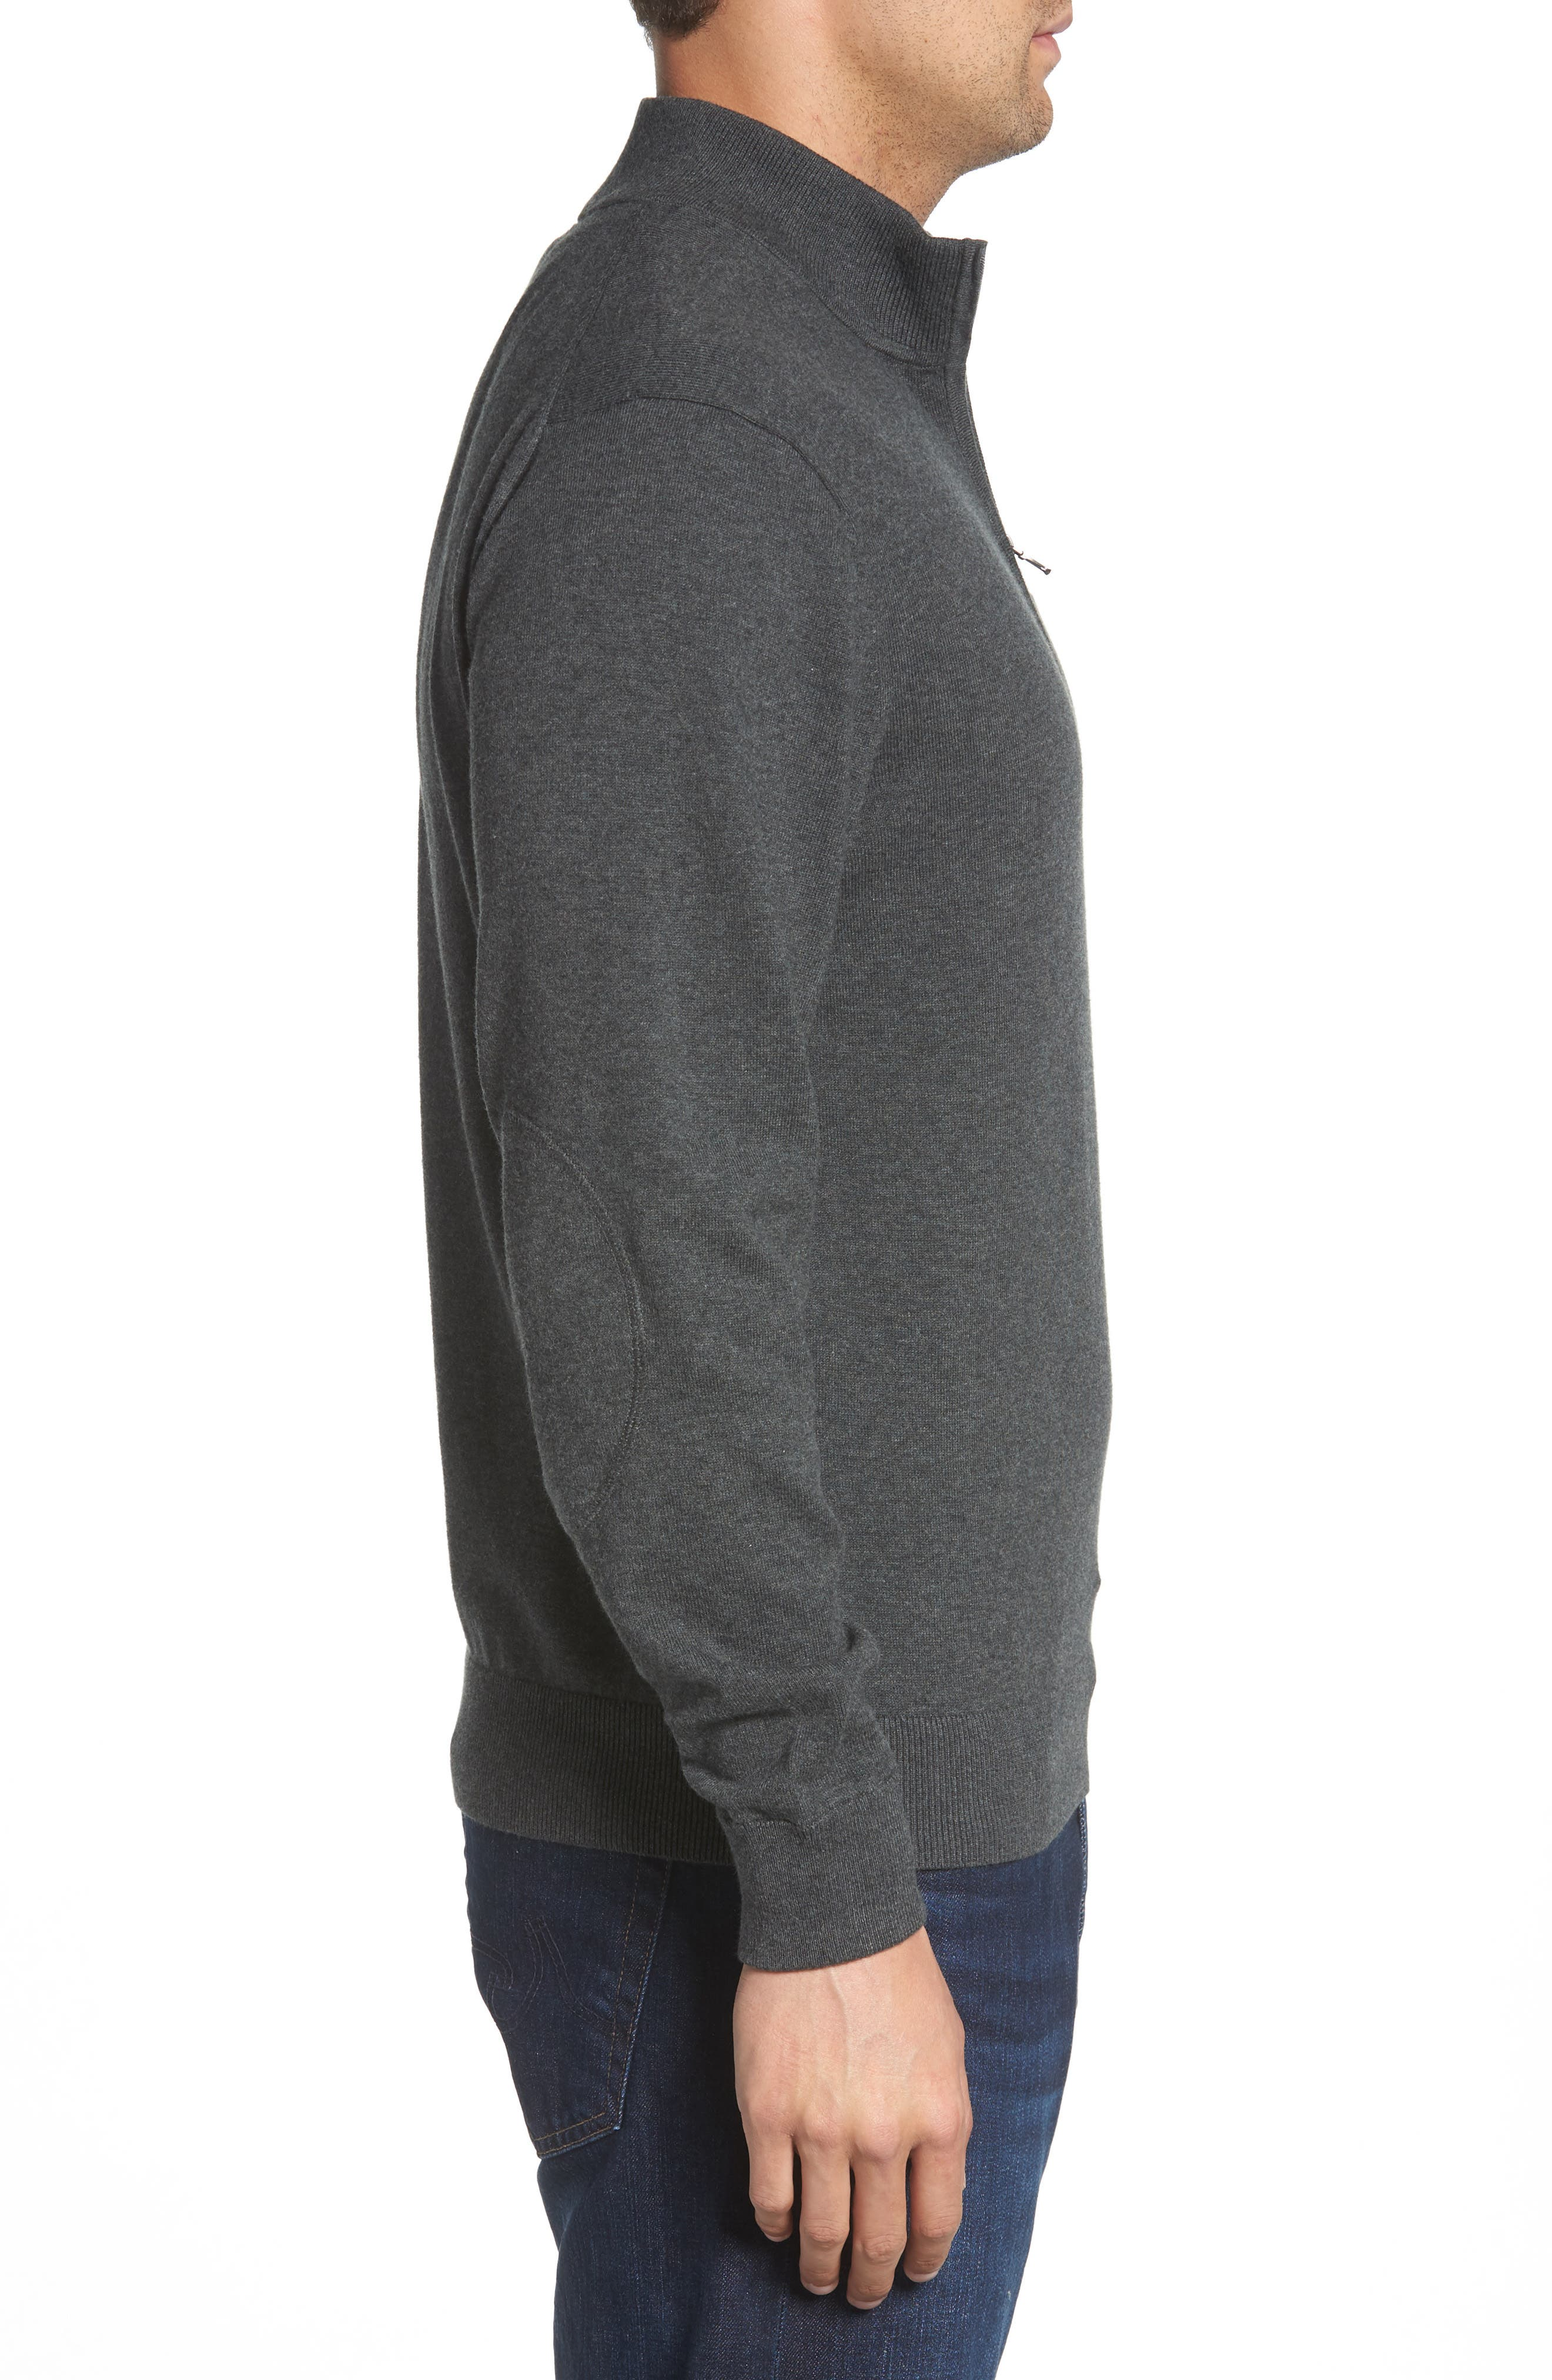 CUTTER & BUCK,                             Indianapolis Colts - Lakemont Regular Fit Quarter Zip Sweater,                             Alternate thumbnail 3, color,                             CHARCOAL HEATHER